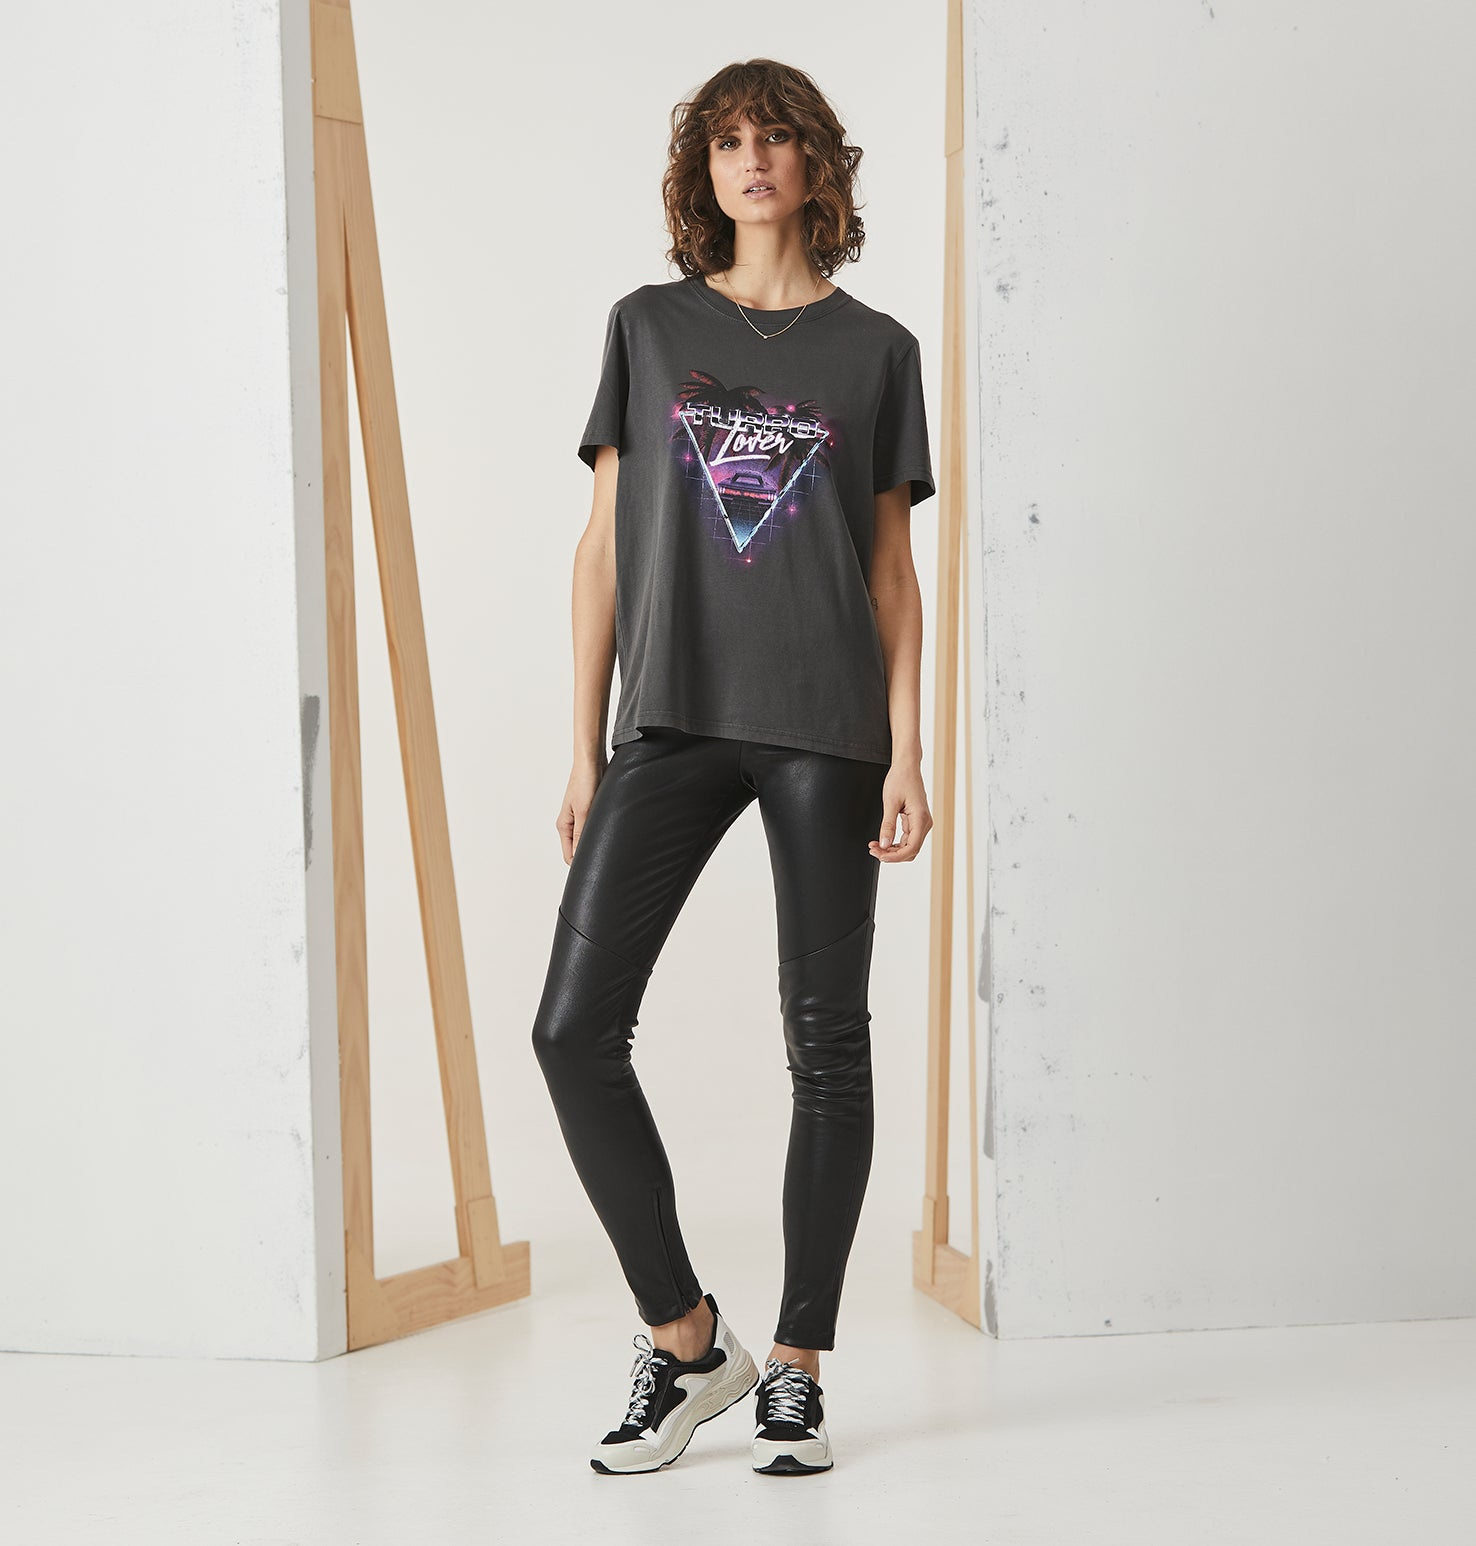 Turbo Lover Tee - Faded Black